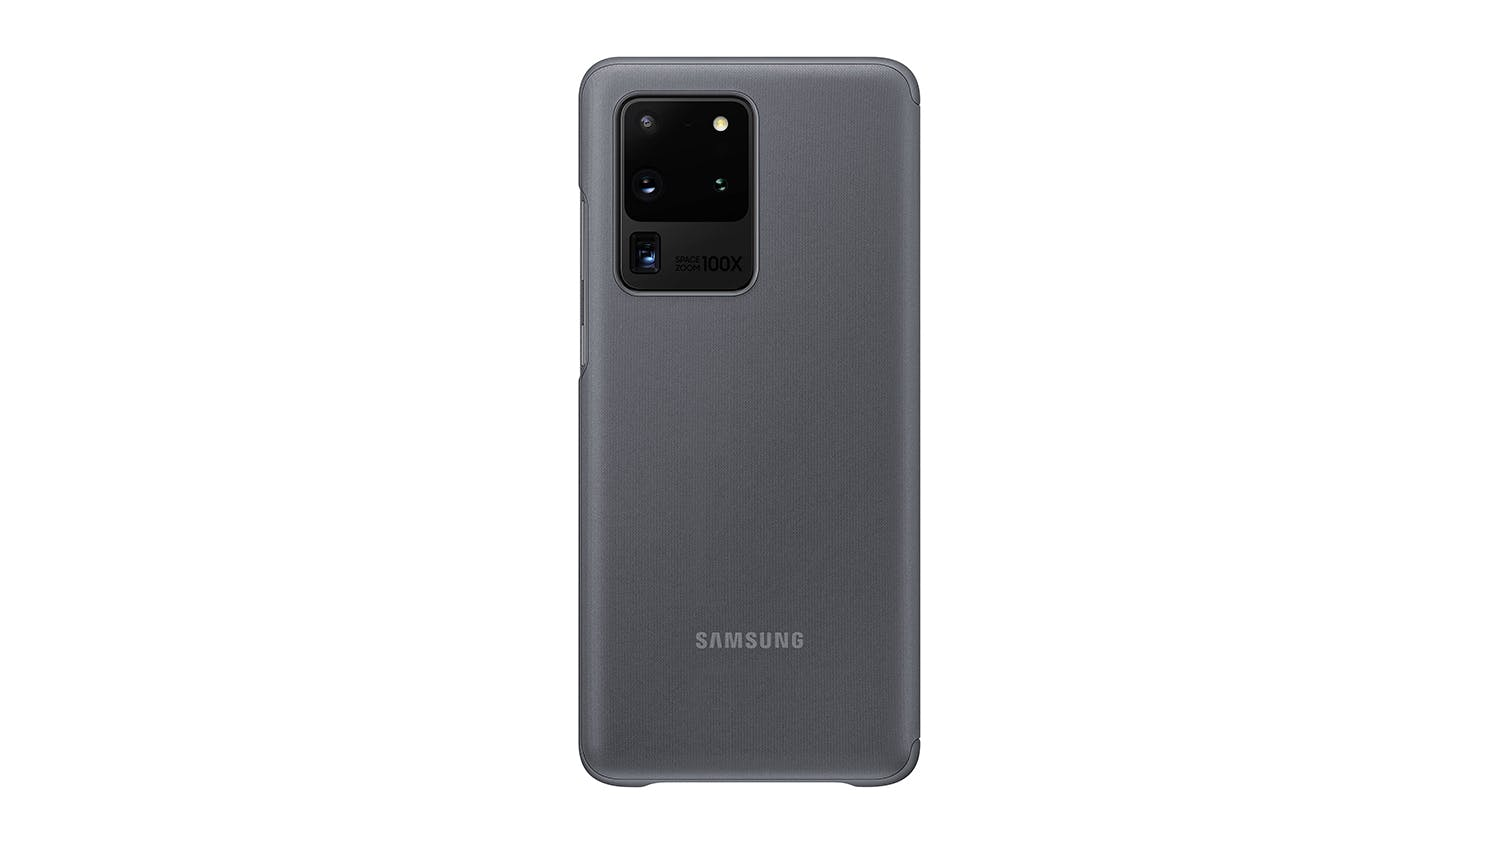 Samsung Smart View Cover for Samsung Galaxy S20 Ultra - Grey